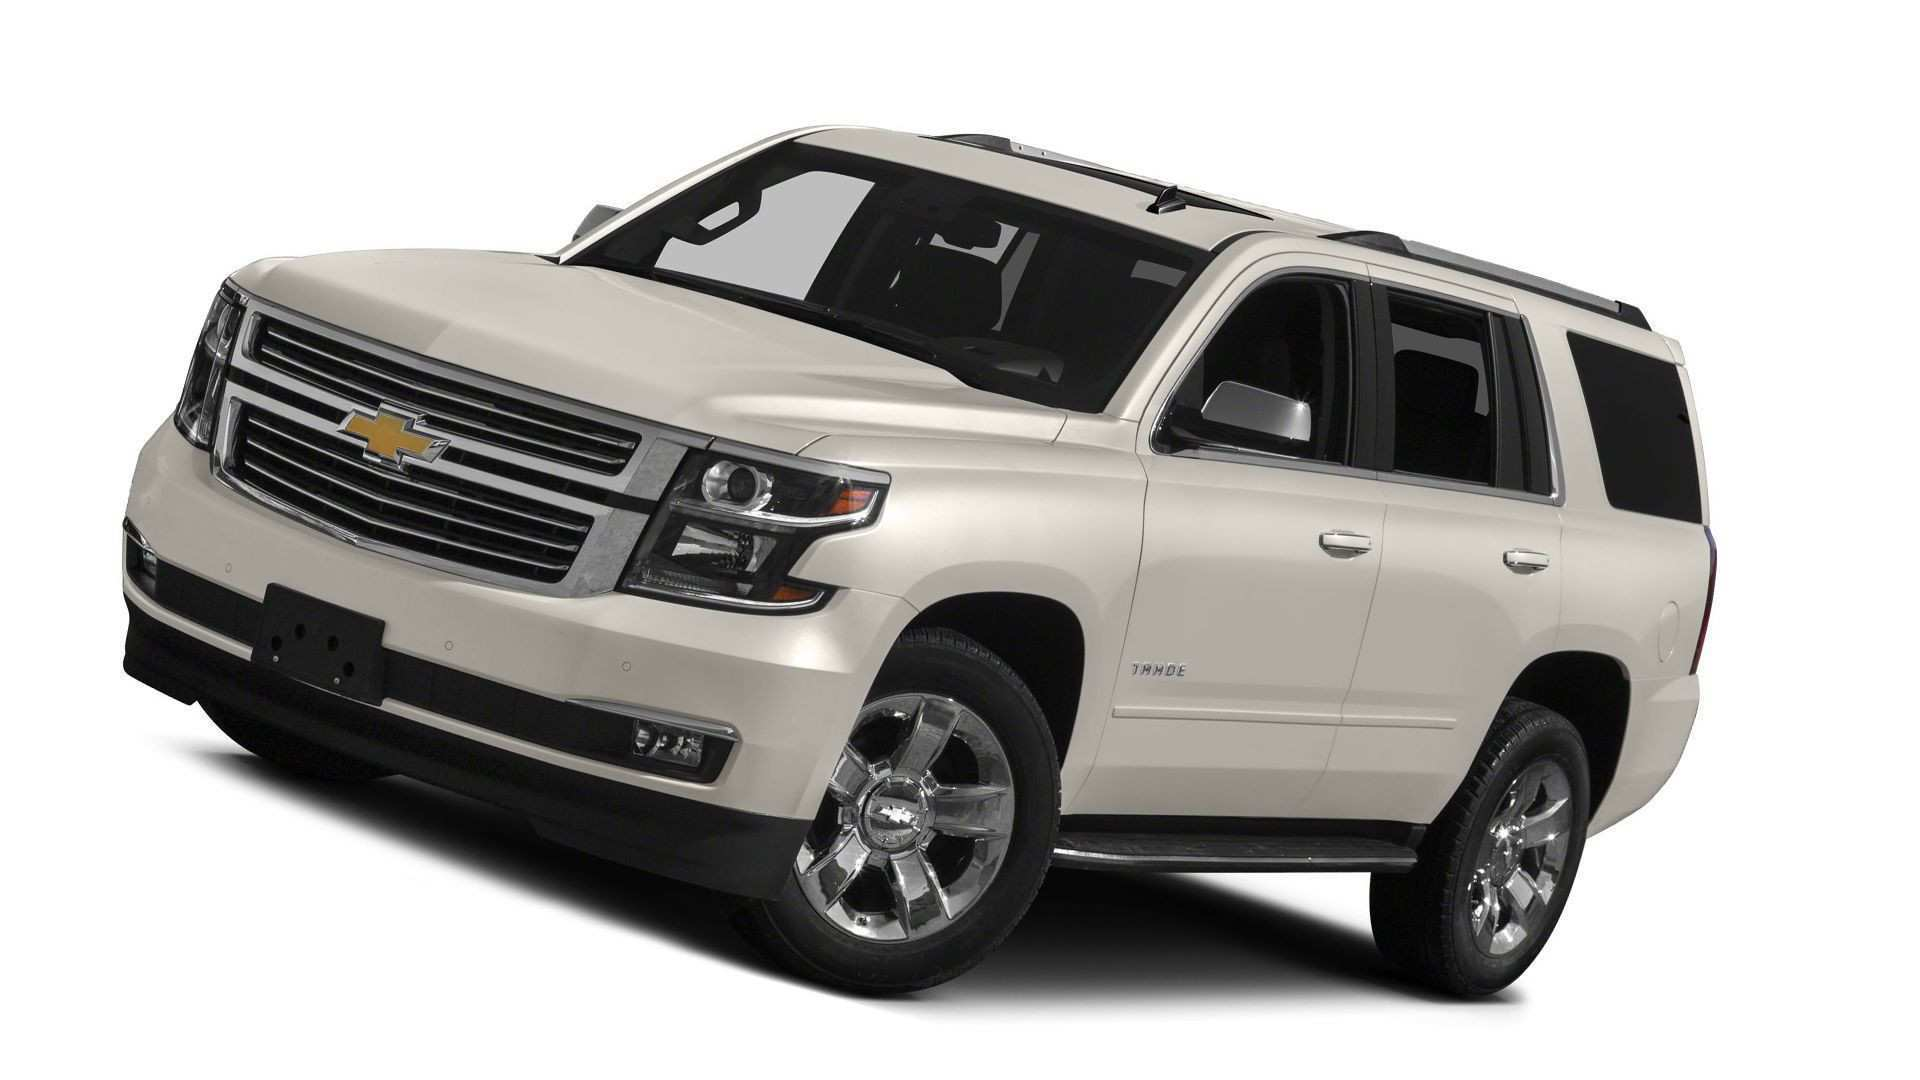 97 Great 2020 Chevy Tahoe Concept Exterior and Interior with 2020 Chevy Tahoe Concept